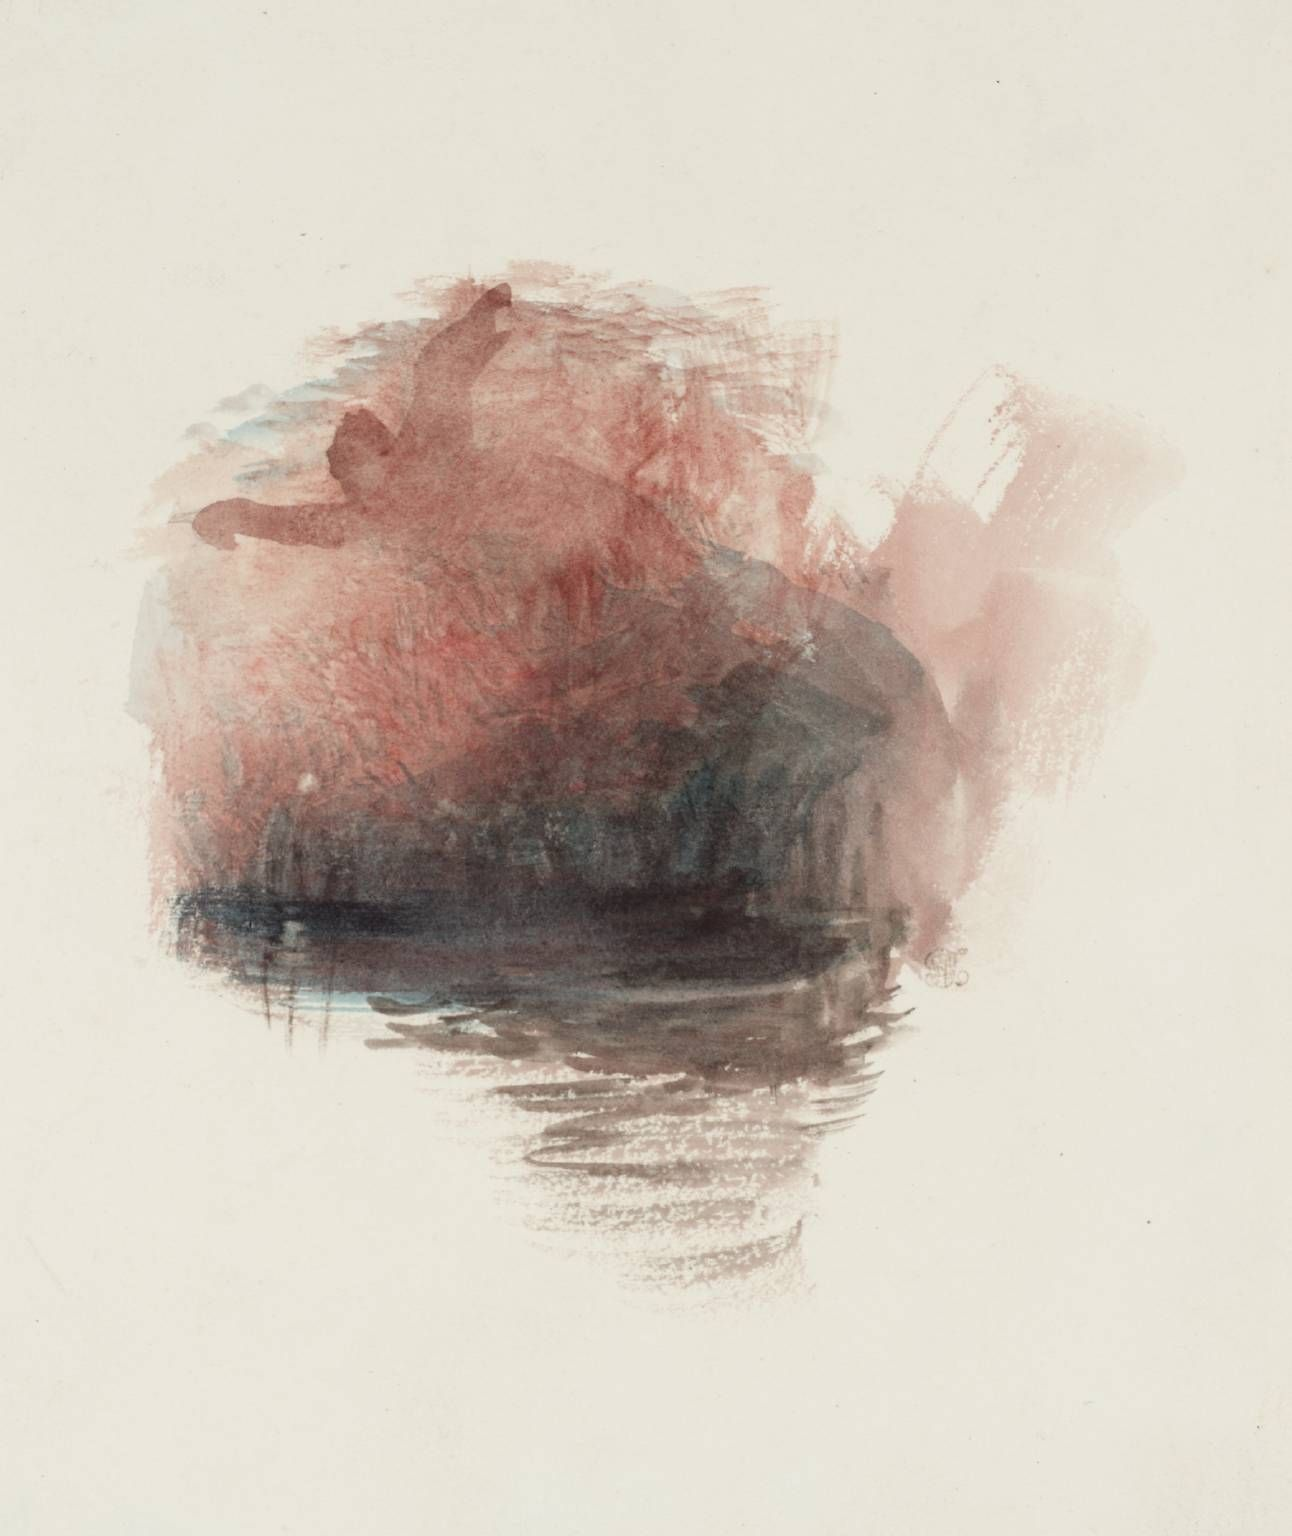 J. M. W. Turner: Study for A Tempest, Rogers's 'Poems' c.1830-2.